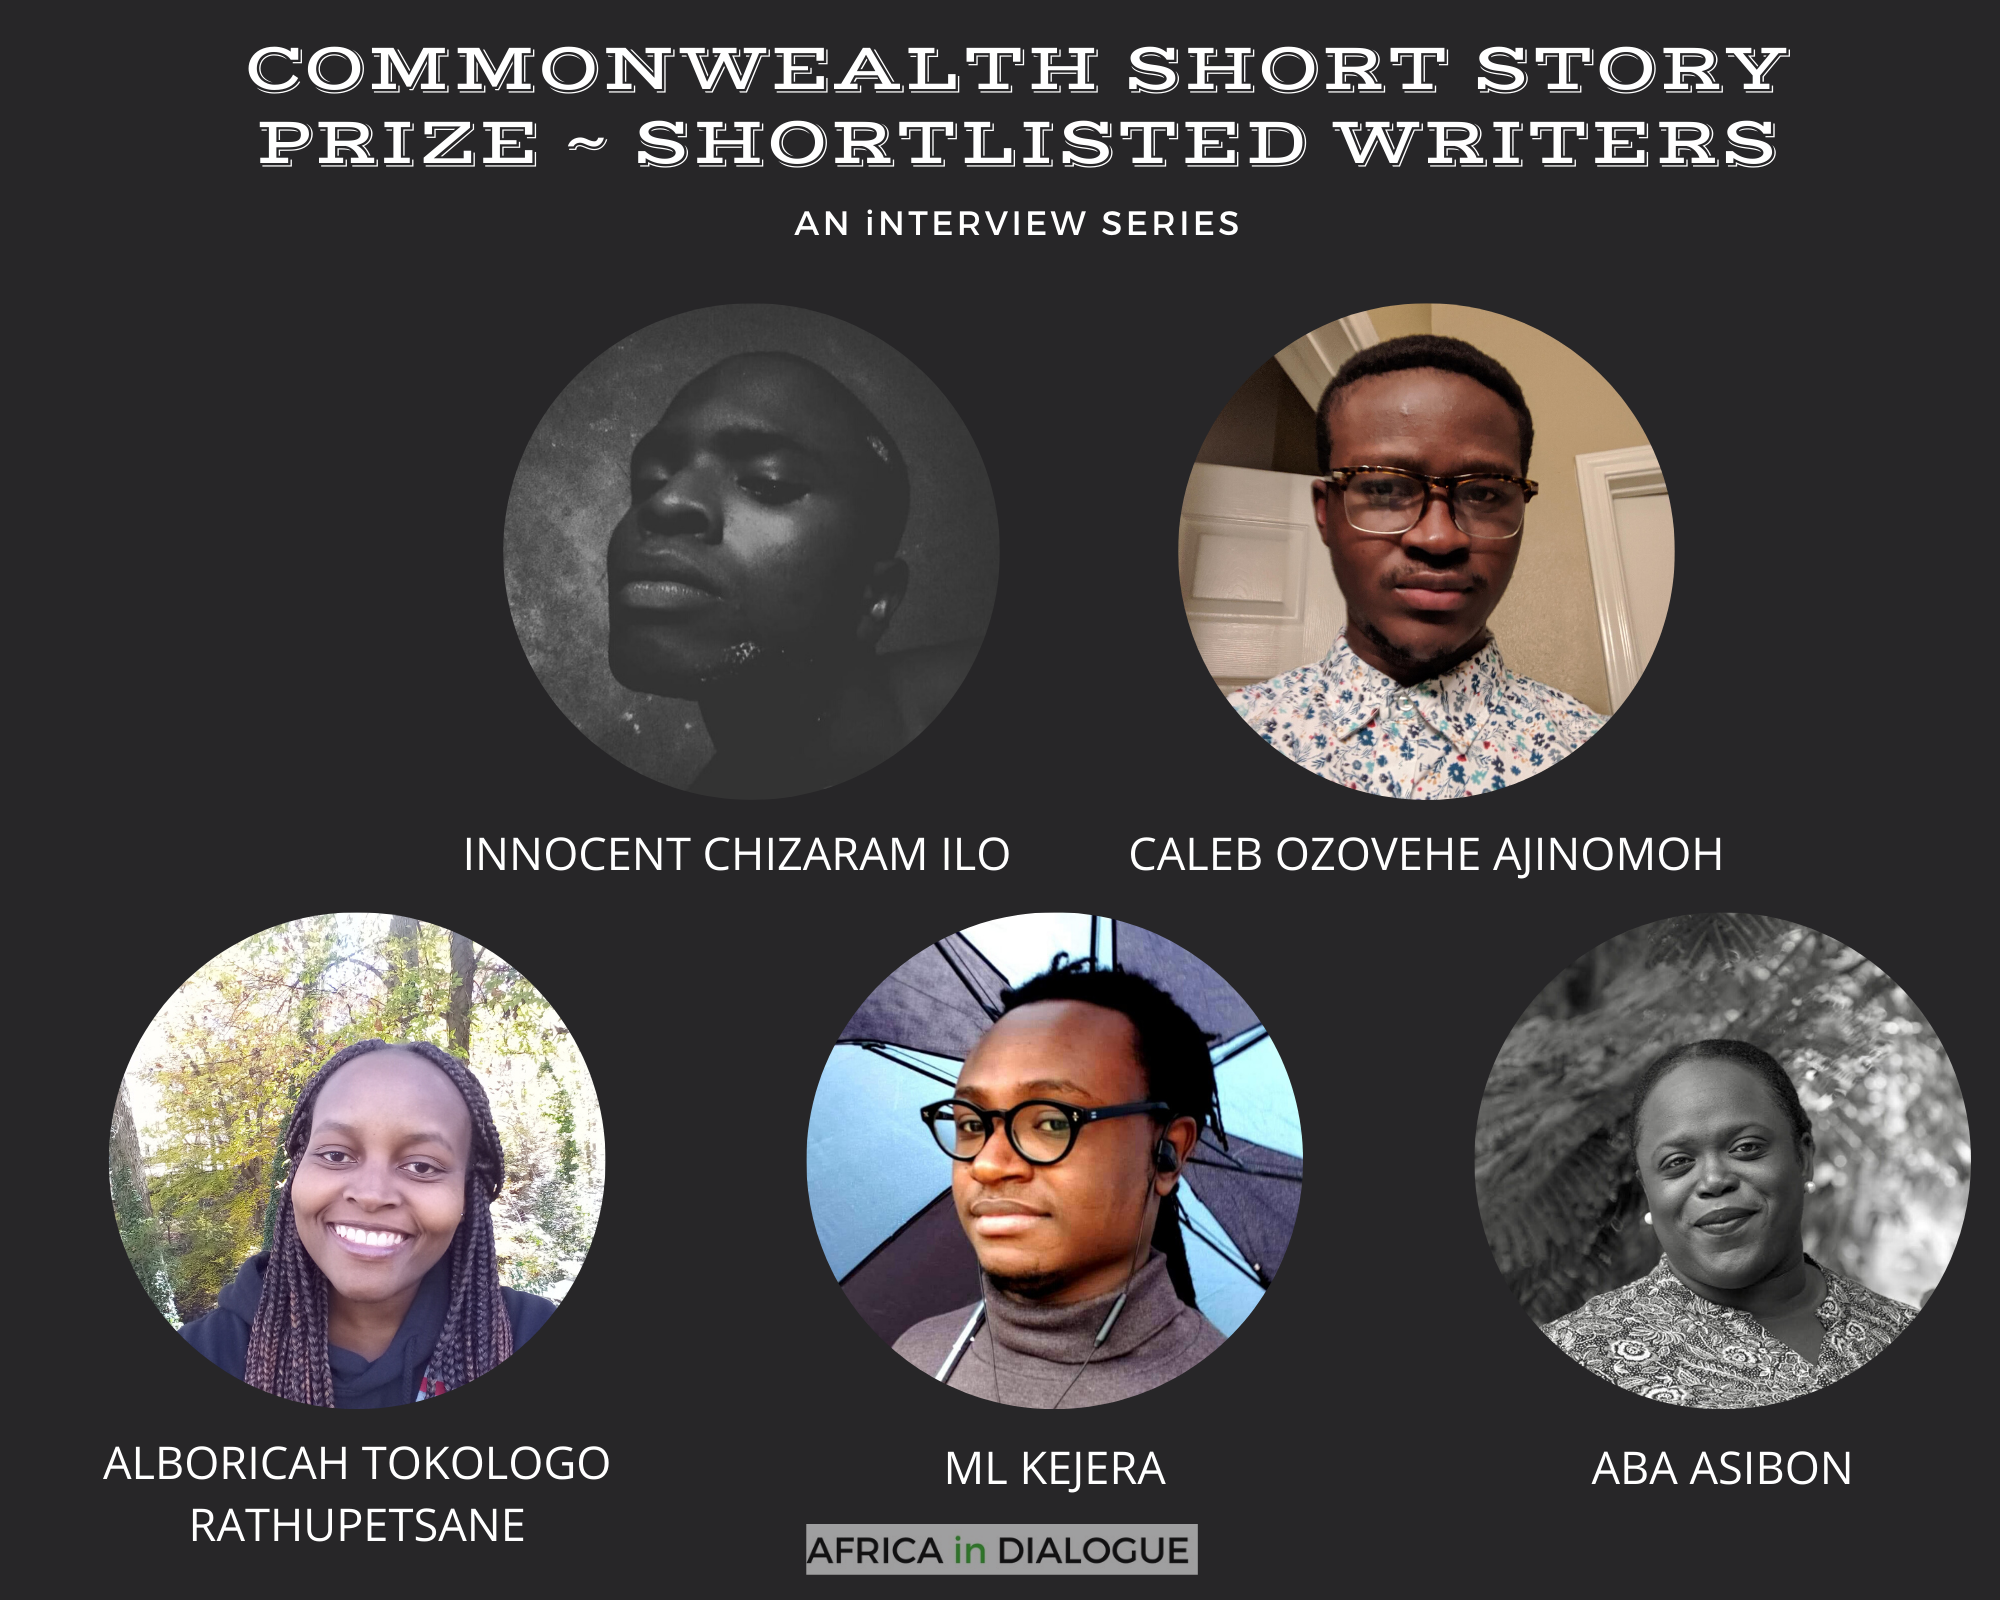 COMMONWEALTH SHORT STORY PRIZE _ 2020 SHORTLISTED WRITERS